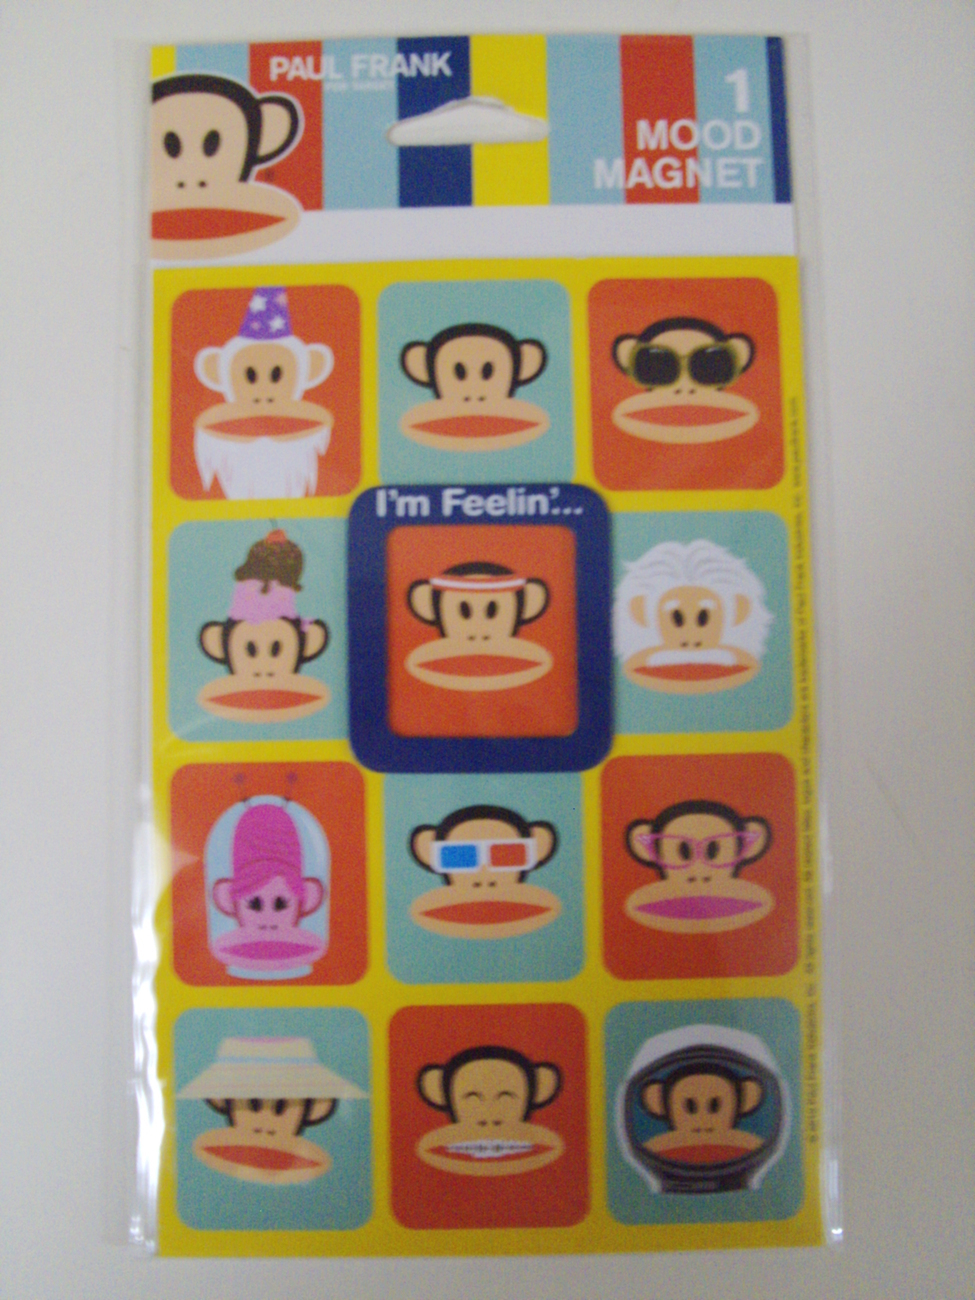 Paul Frank Industries Julius the Monkey Mood Magnet - New